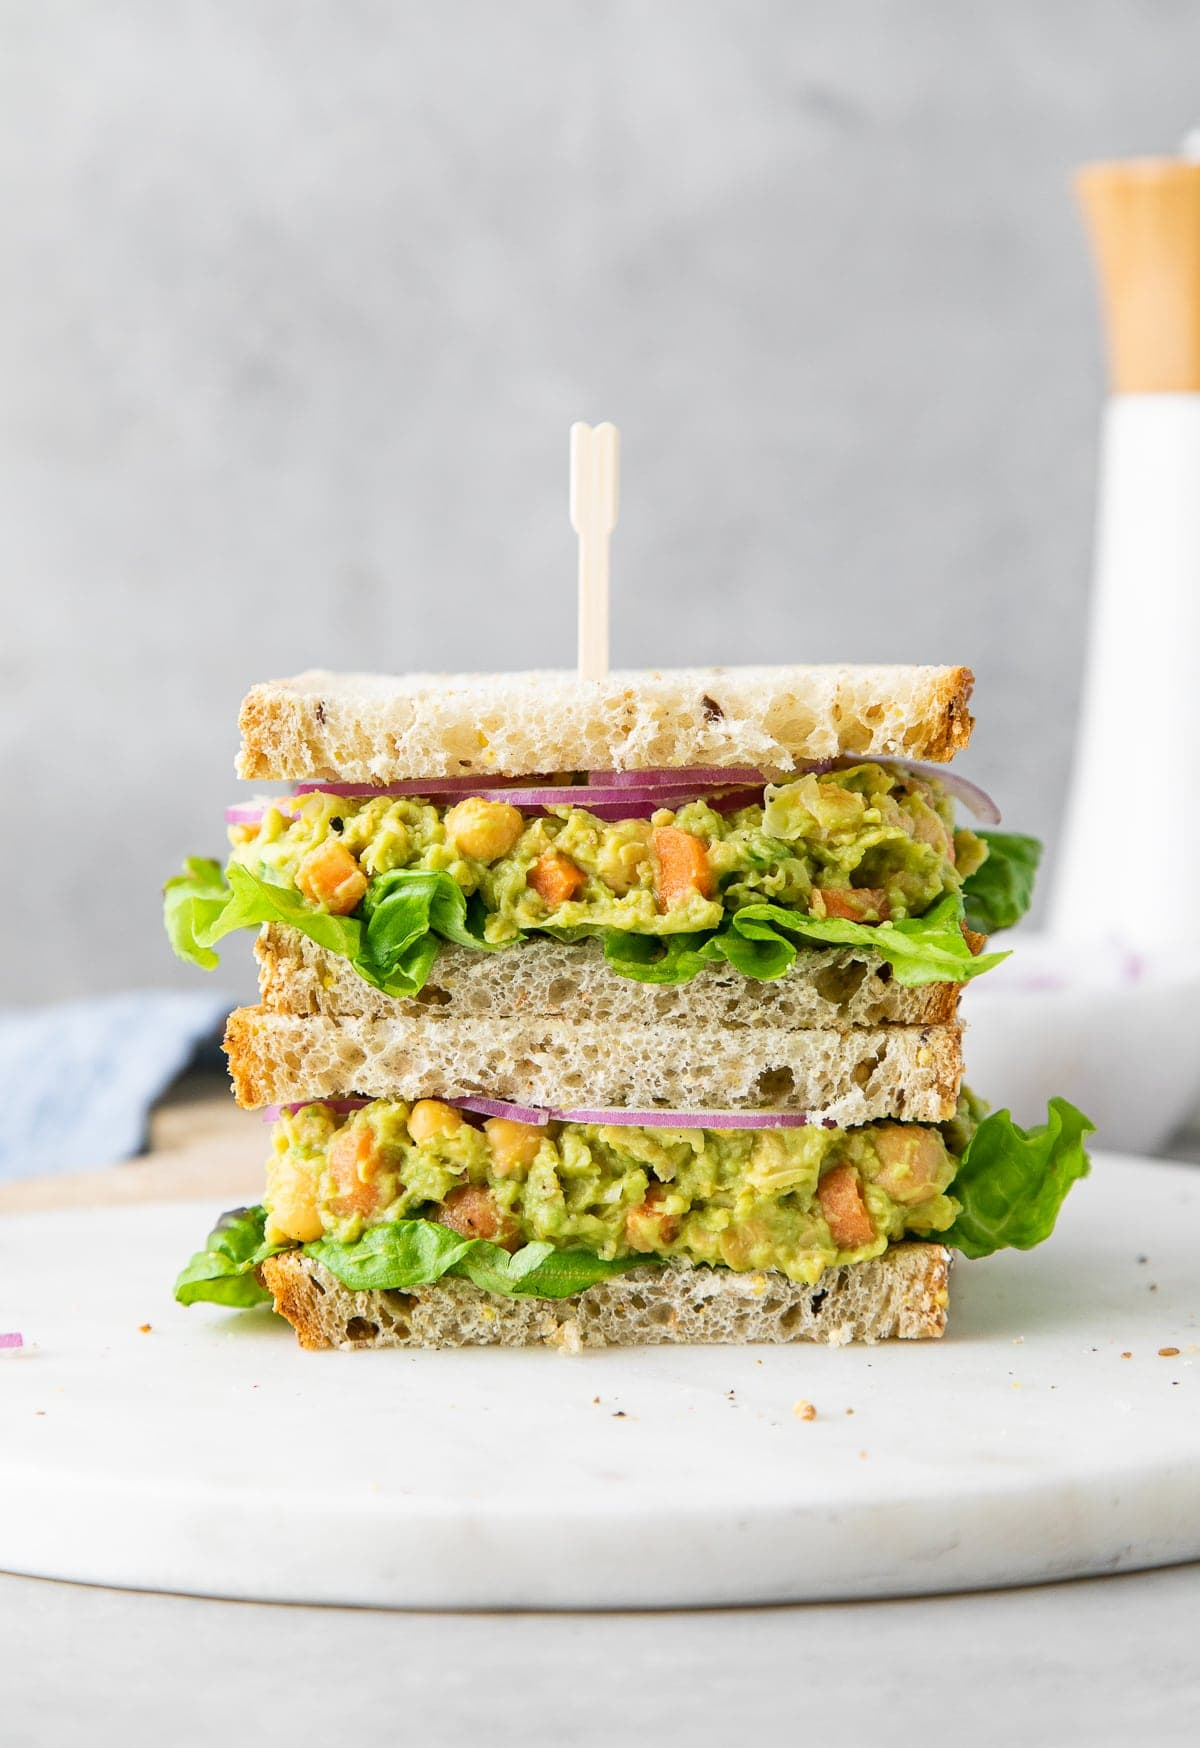 Chickpea Avocado Salad Sandwich Healthy Easy The Simple Veganista